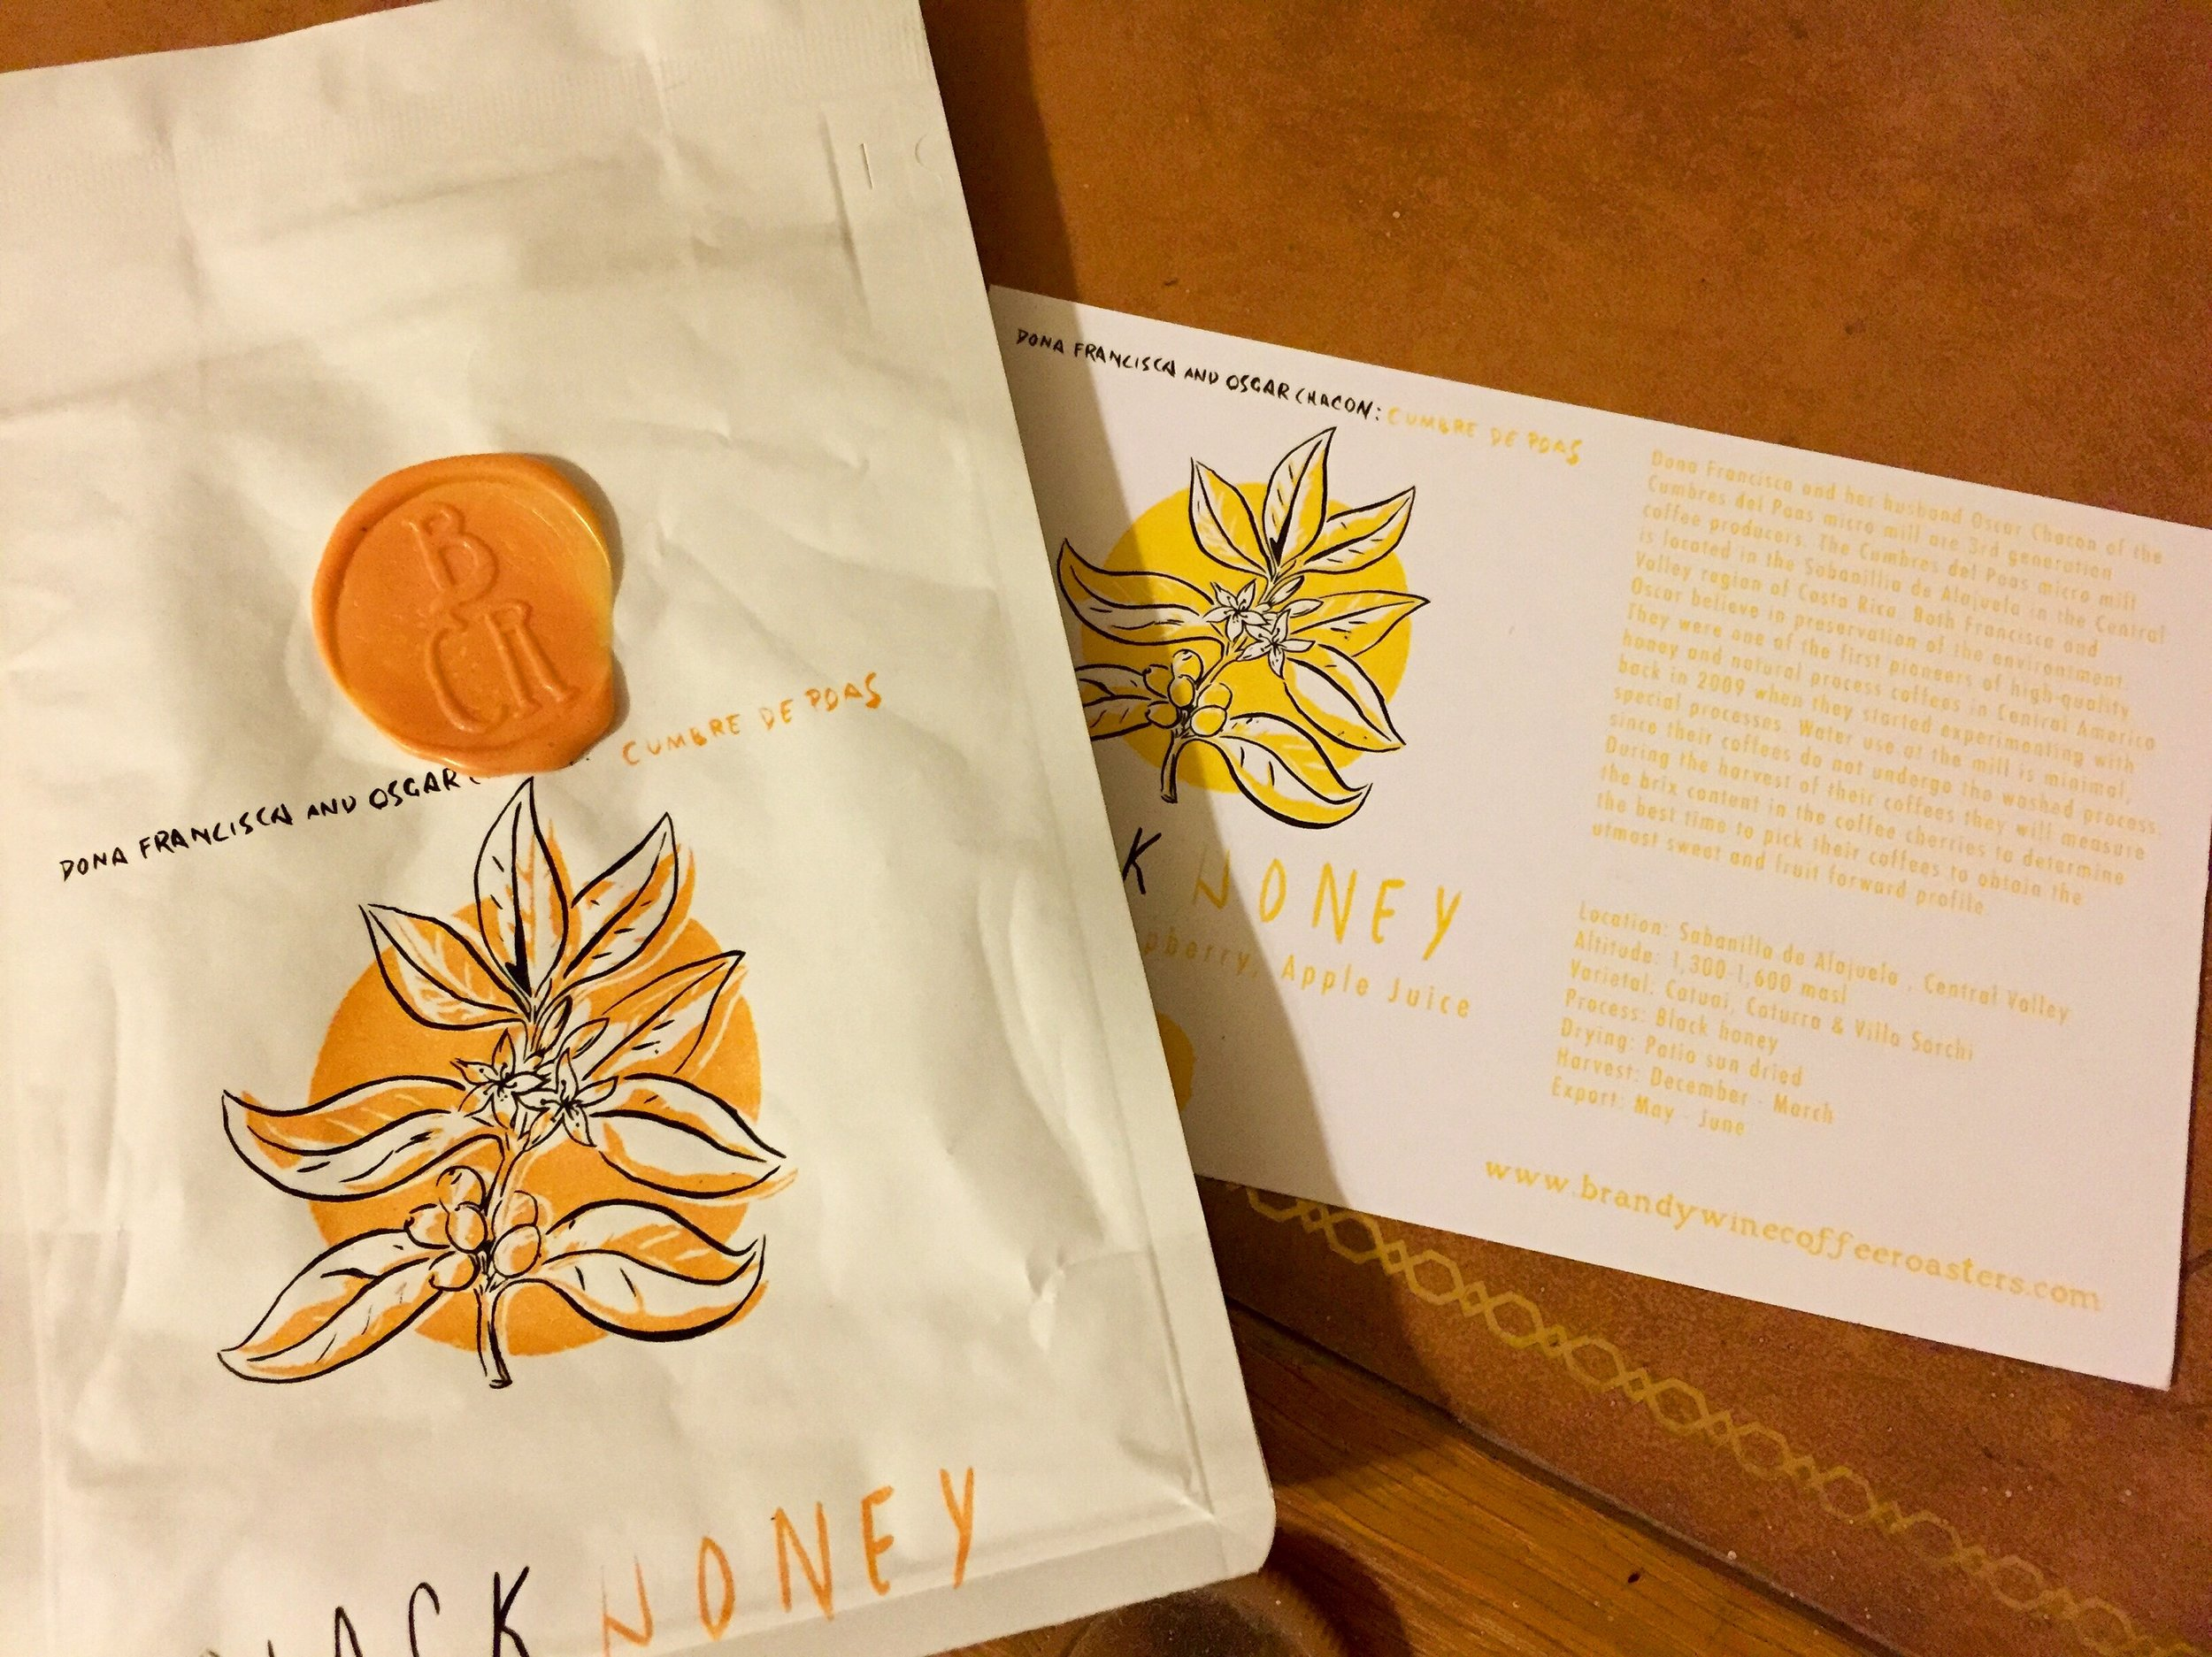 wax sealed, hand drawn, zipper bags, and custom info cards - there's a lot to like here